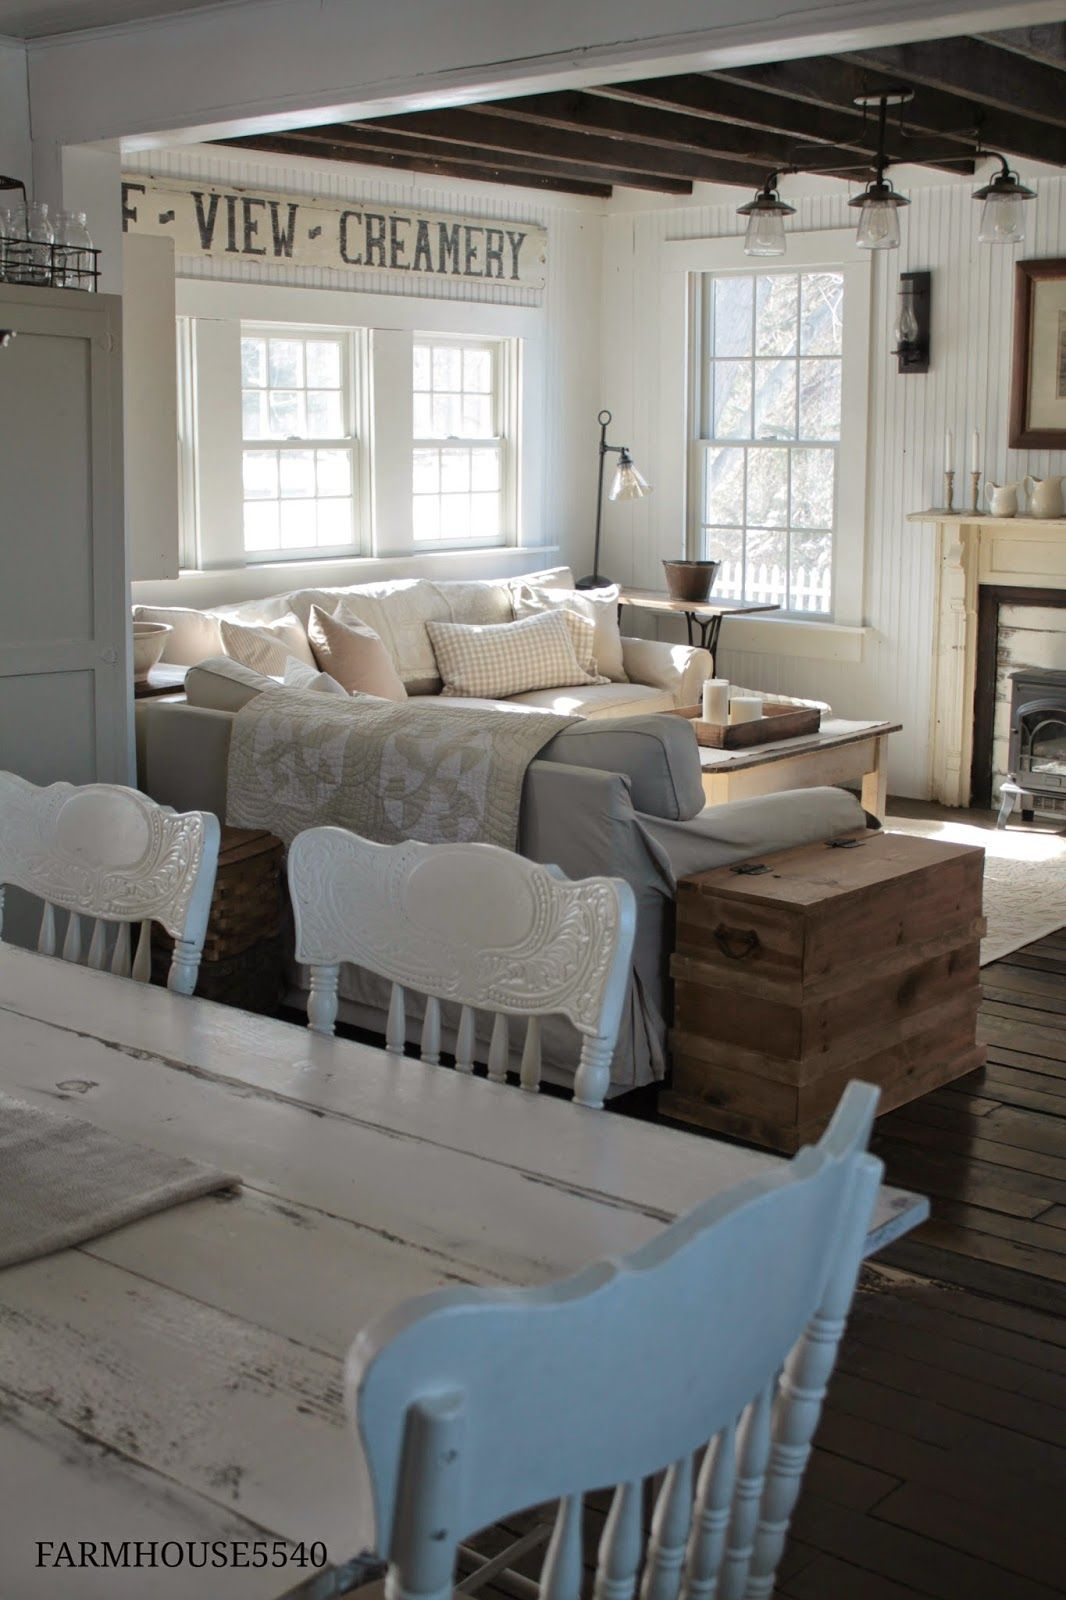 Farmhouse 5540 Love The Painted Chairs Home Decor